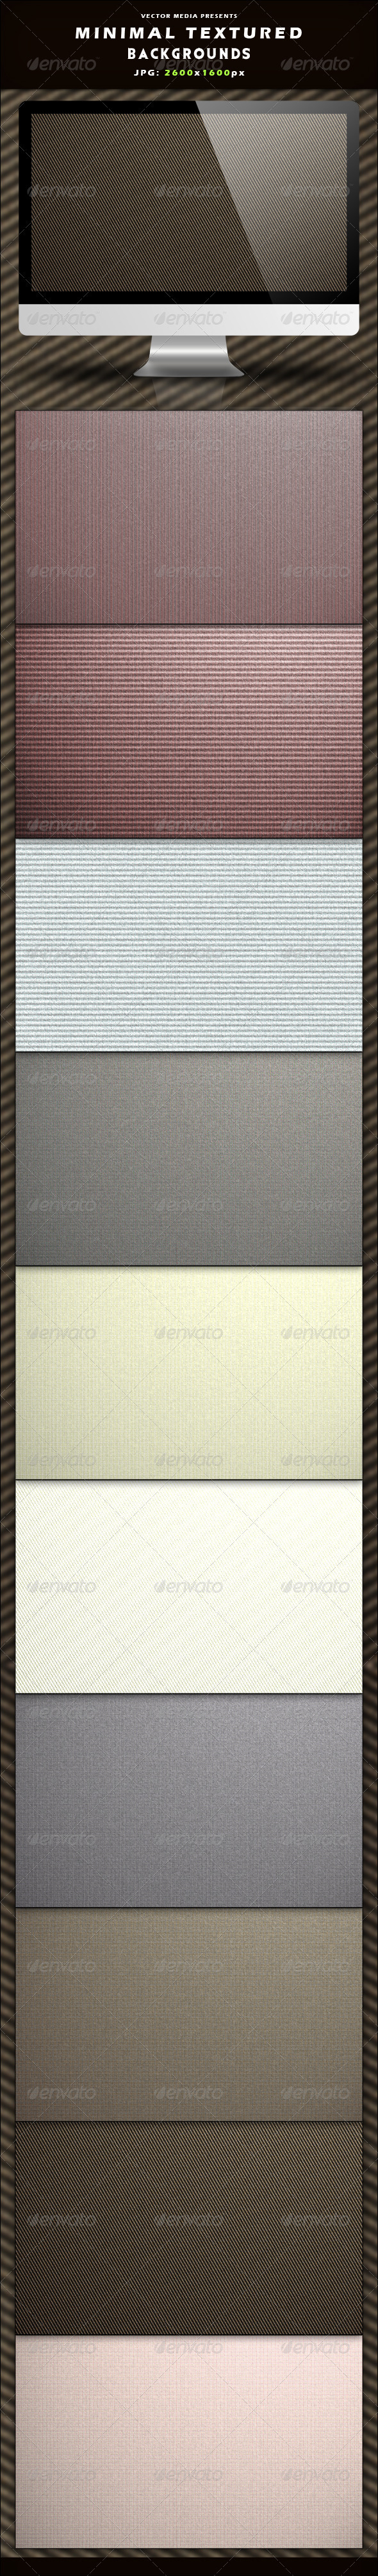 GraphicRiver Minimal Textured Backgrounds 3656461